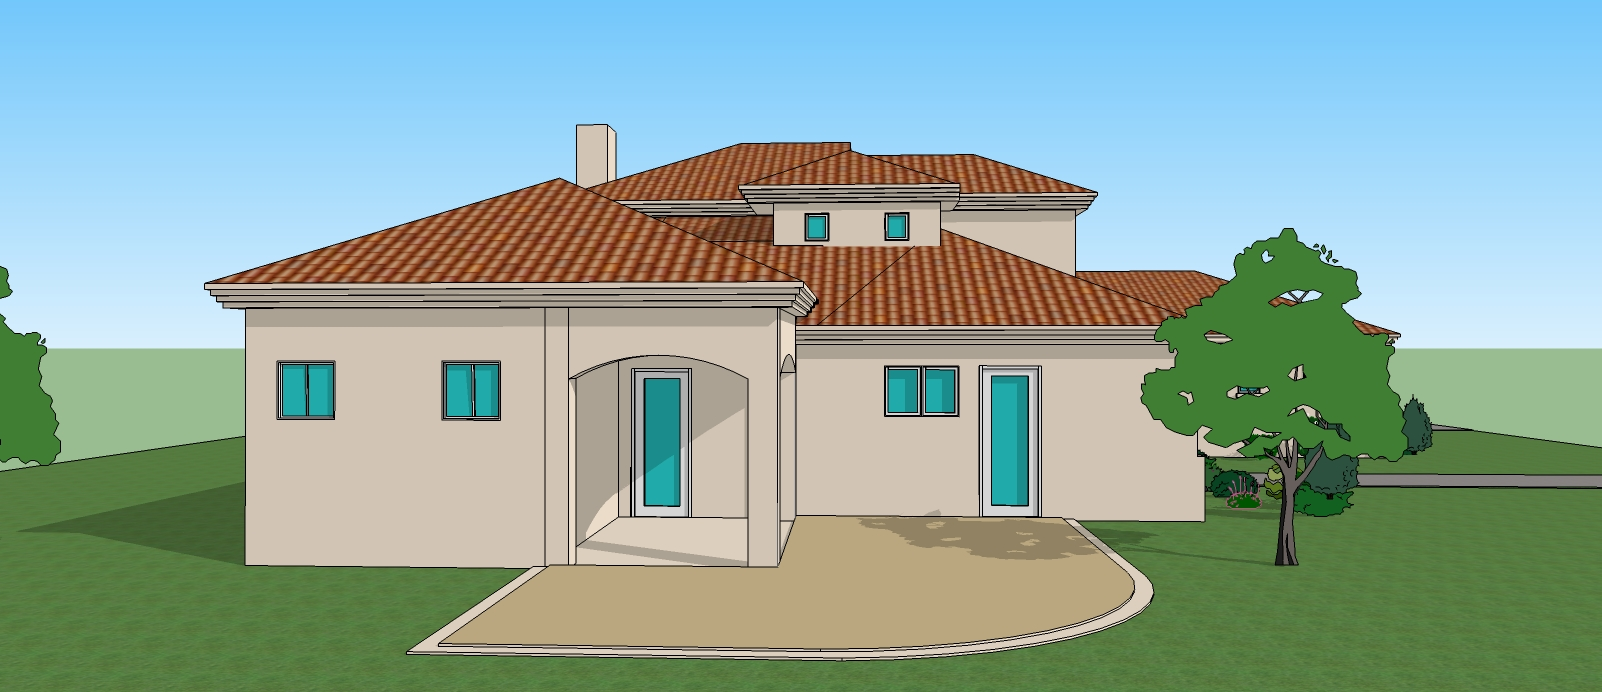 Simple 3d 3 bedroom house plans and 3d view house drawings House plan drawing 3d